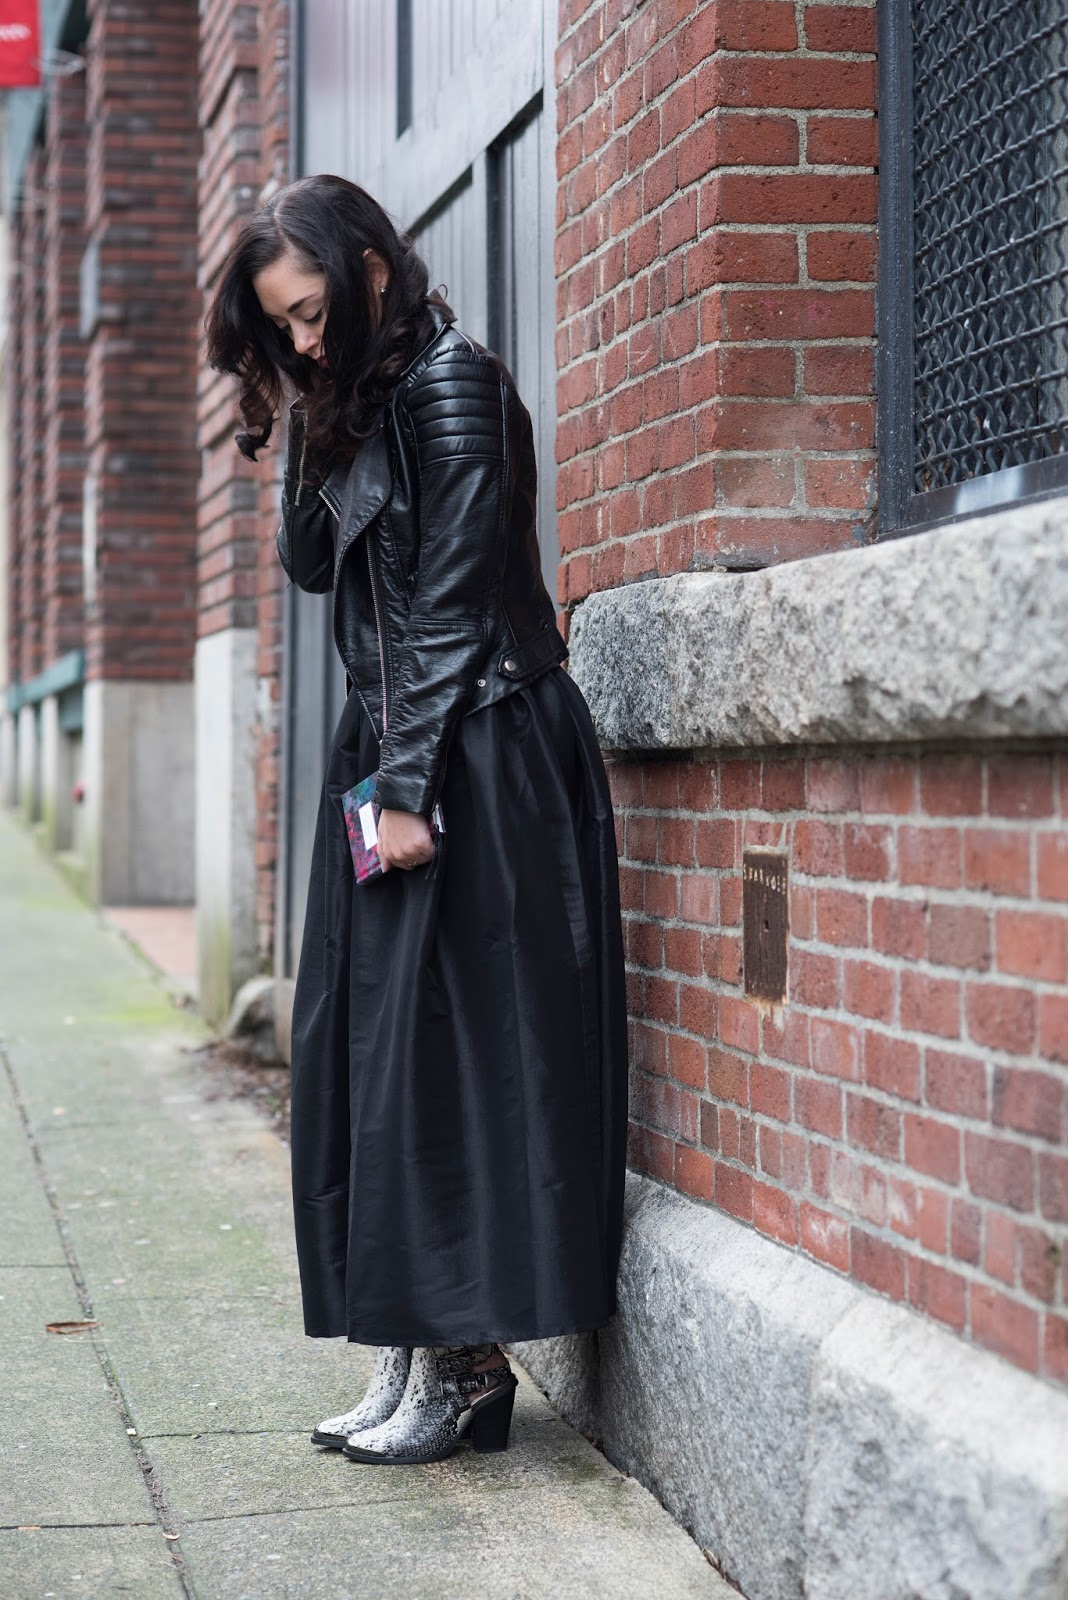 coco and vera top vancouver fashion blog ombre hair h&m leather jacket chicwish black maxi skirt snakeskin ankle boots